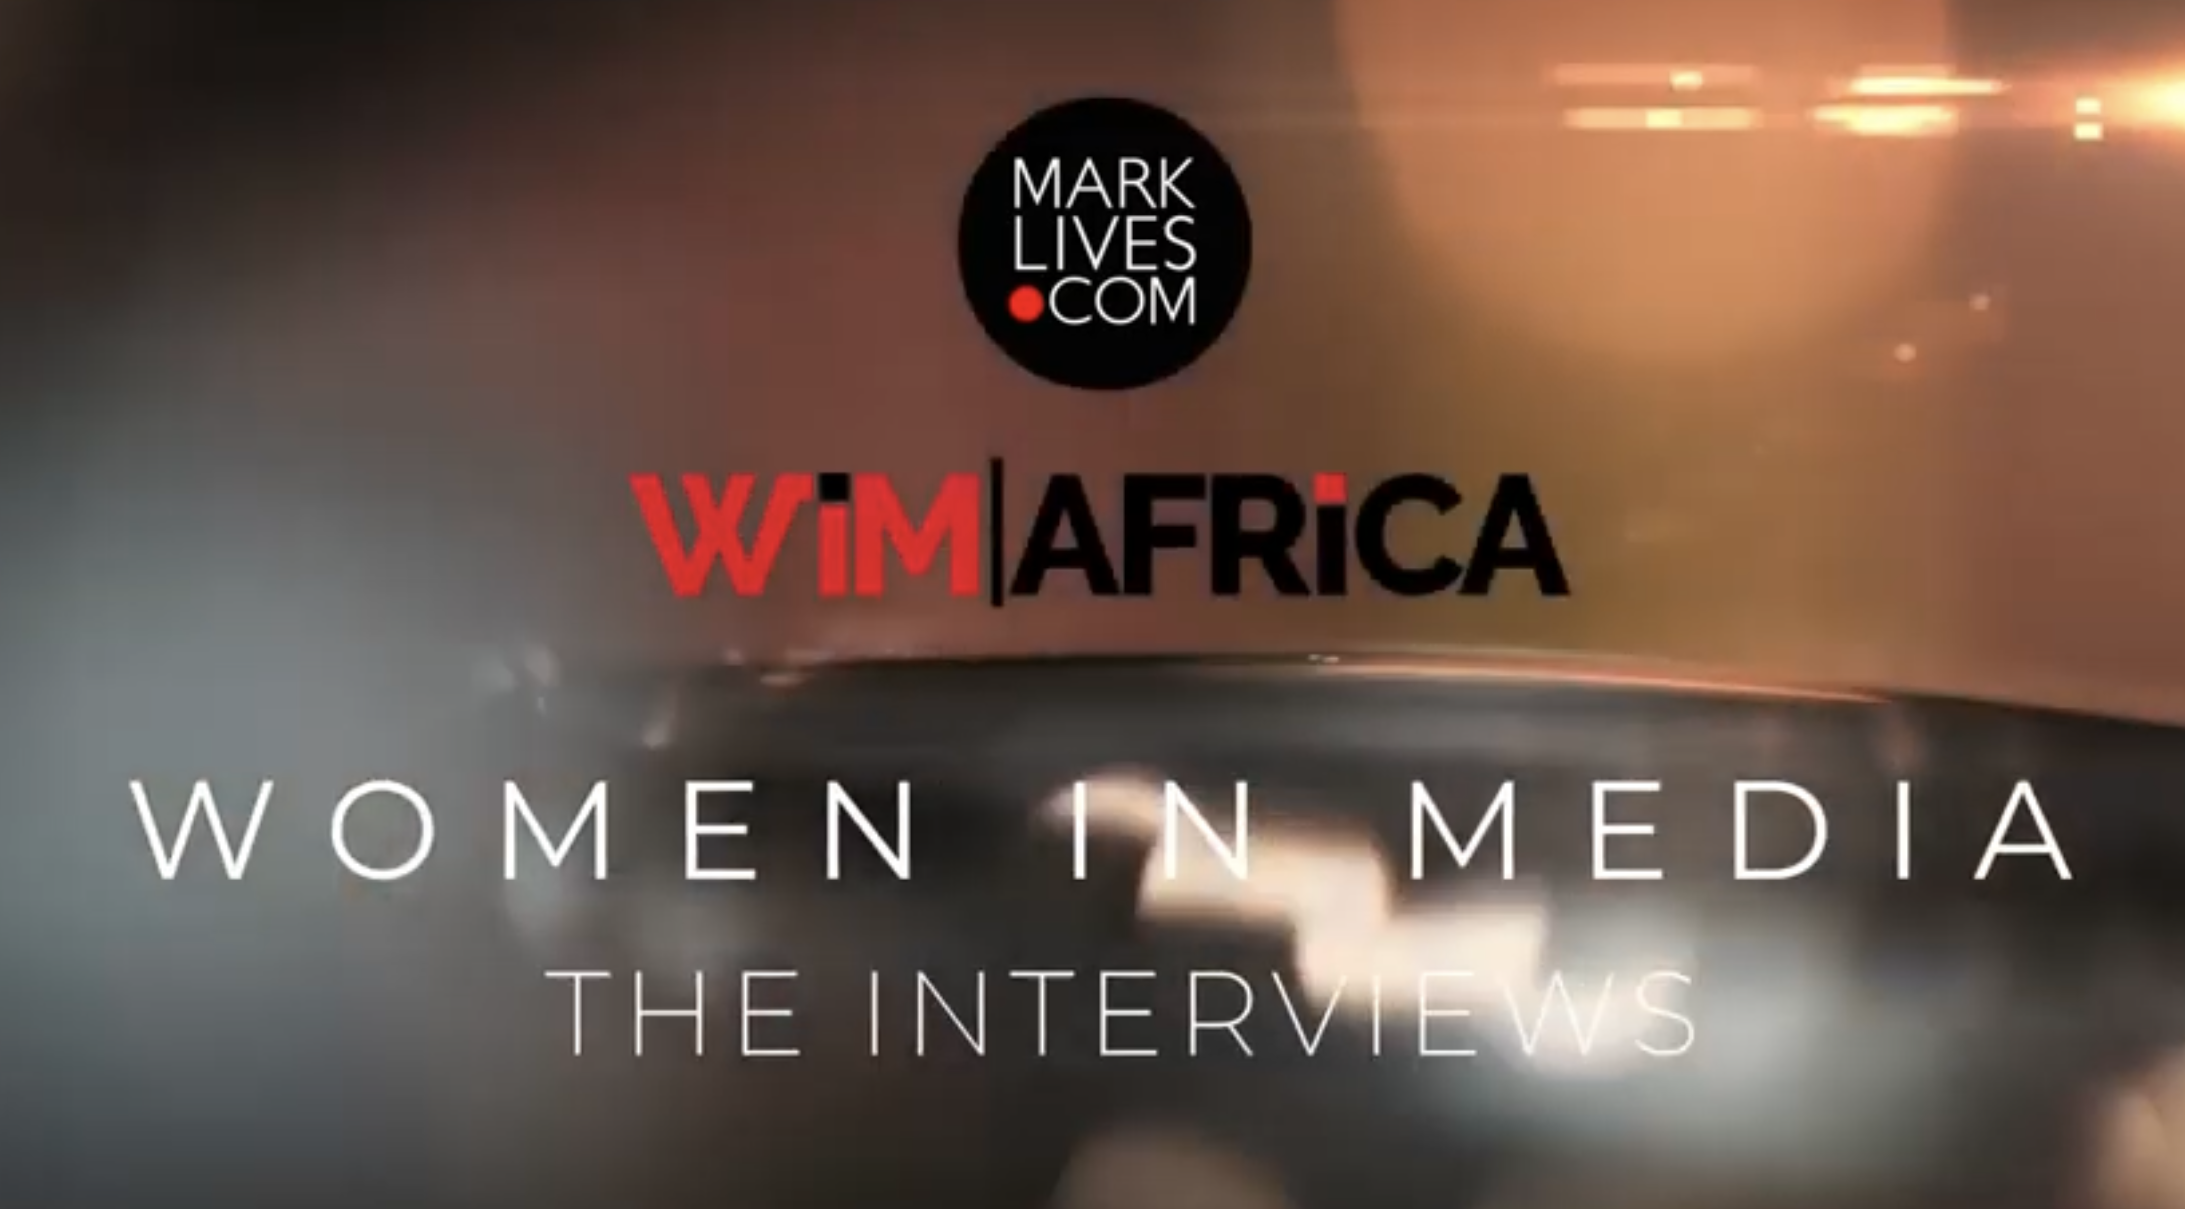 Part II: MarkLives in partnership with WiM Africa talks to Zumi Njongwe of Nestle about setting teams up for success in the pandemic